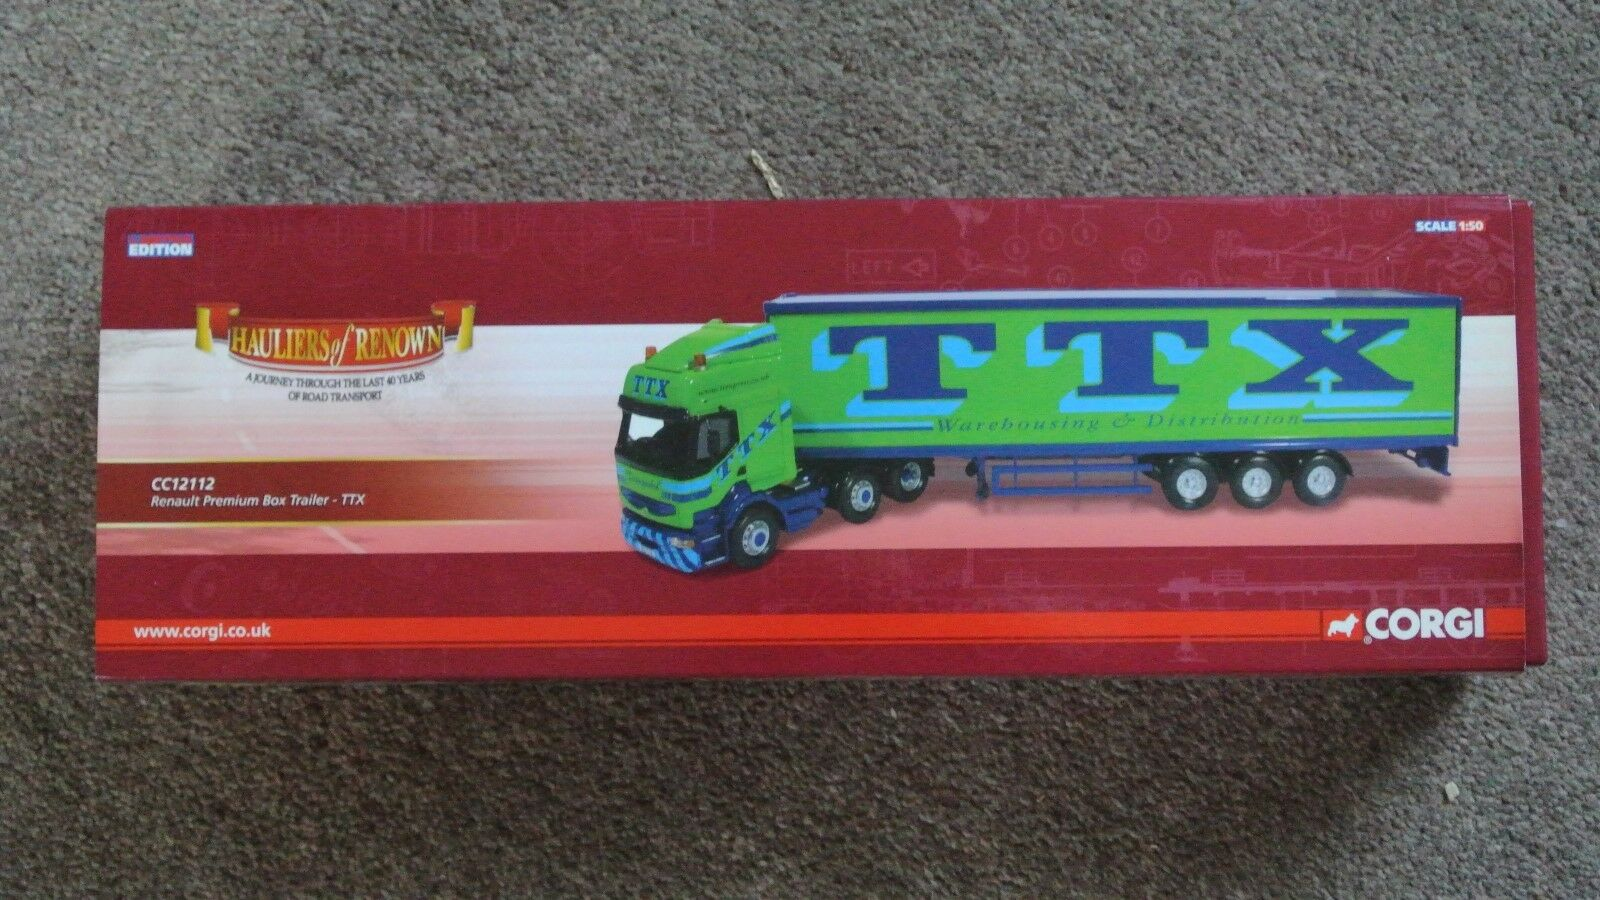 Corgi CC12112 Renault Premium Box Trailer, TTX Warehousing; Excellent+ Boxed NEW